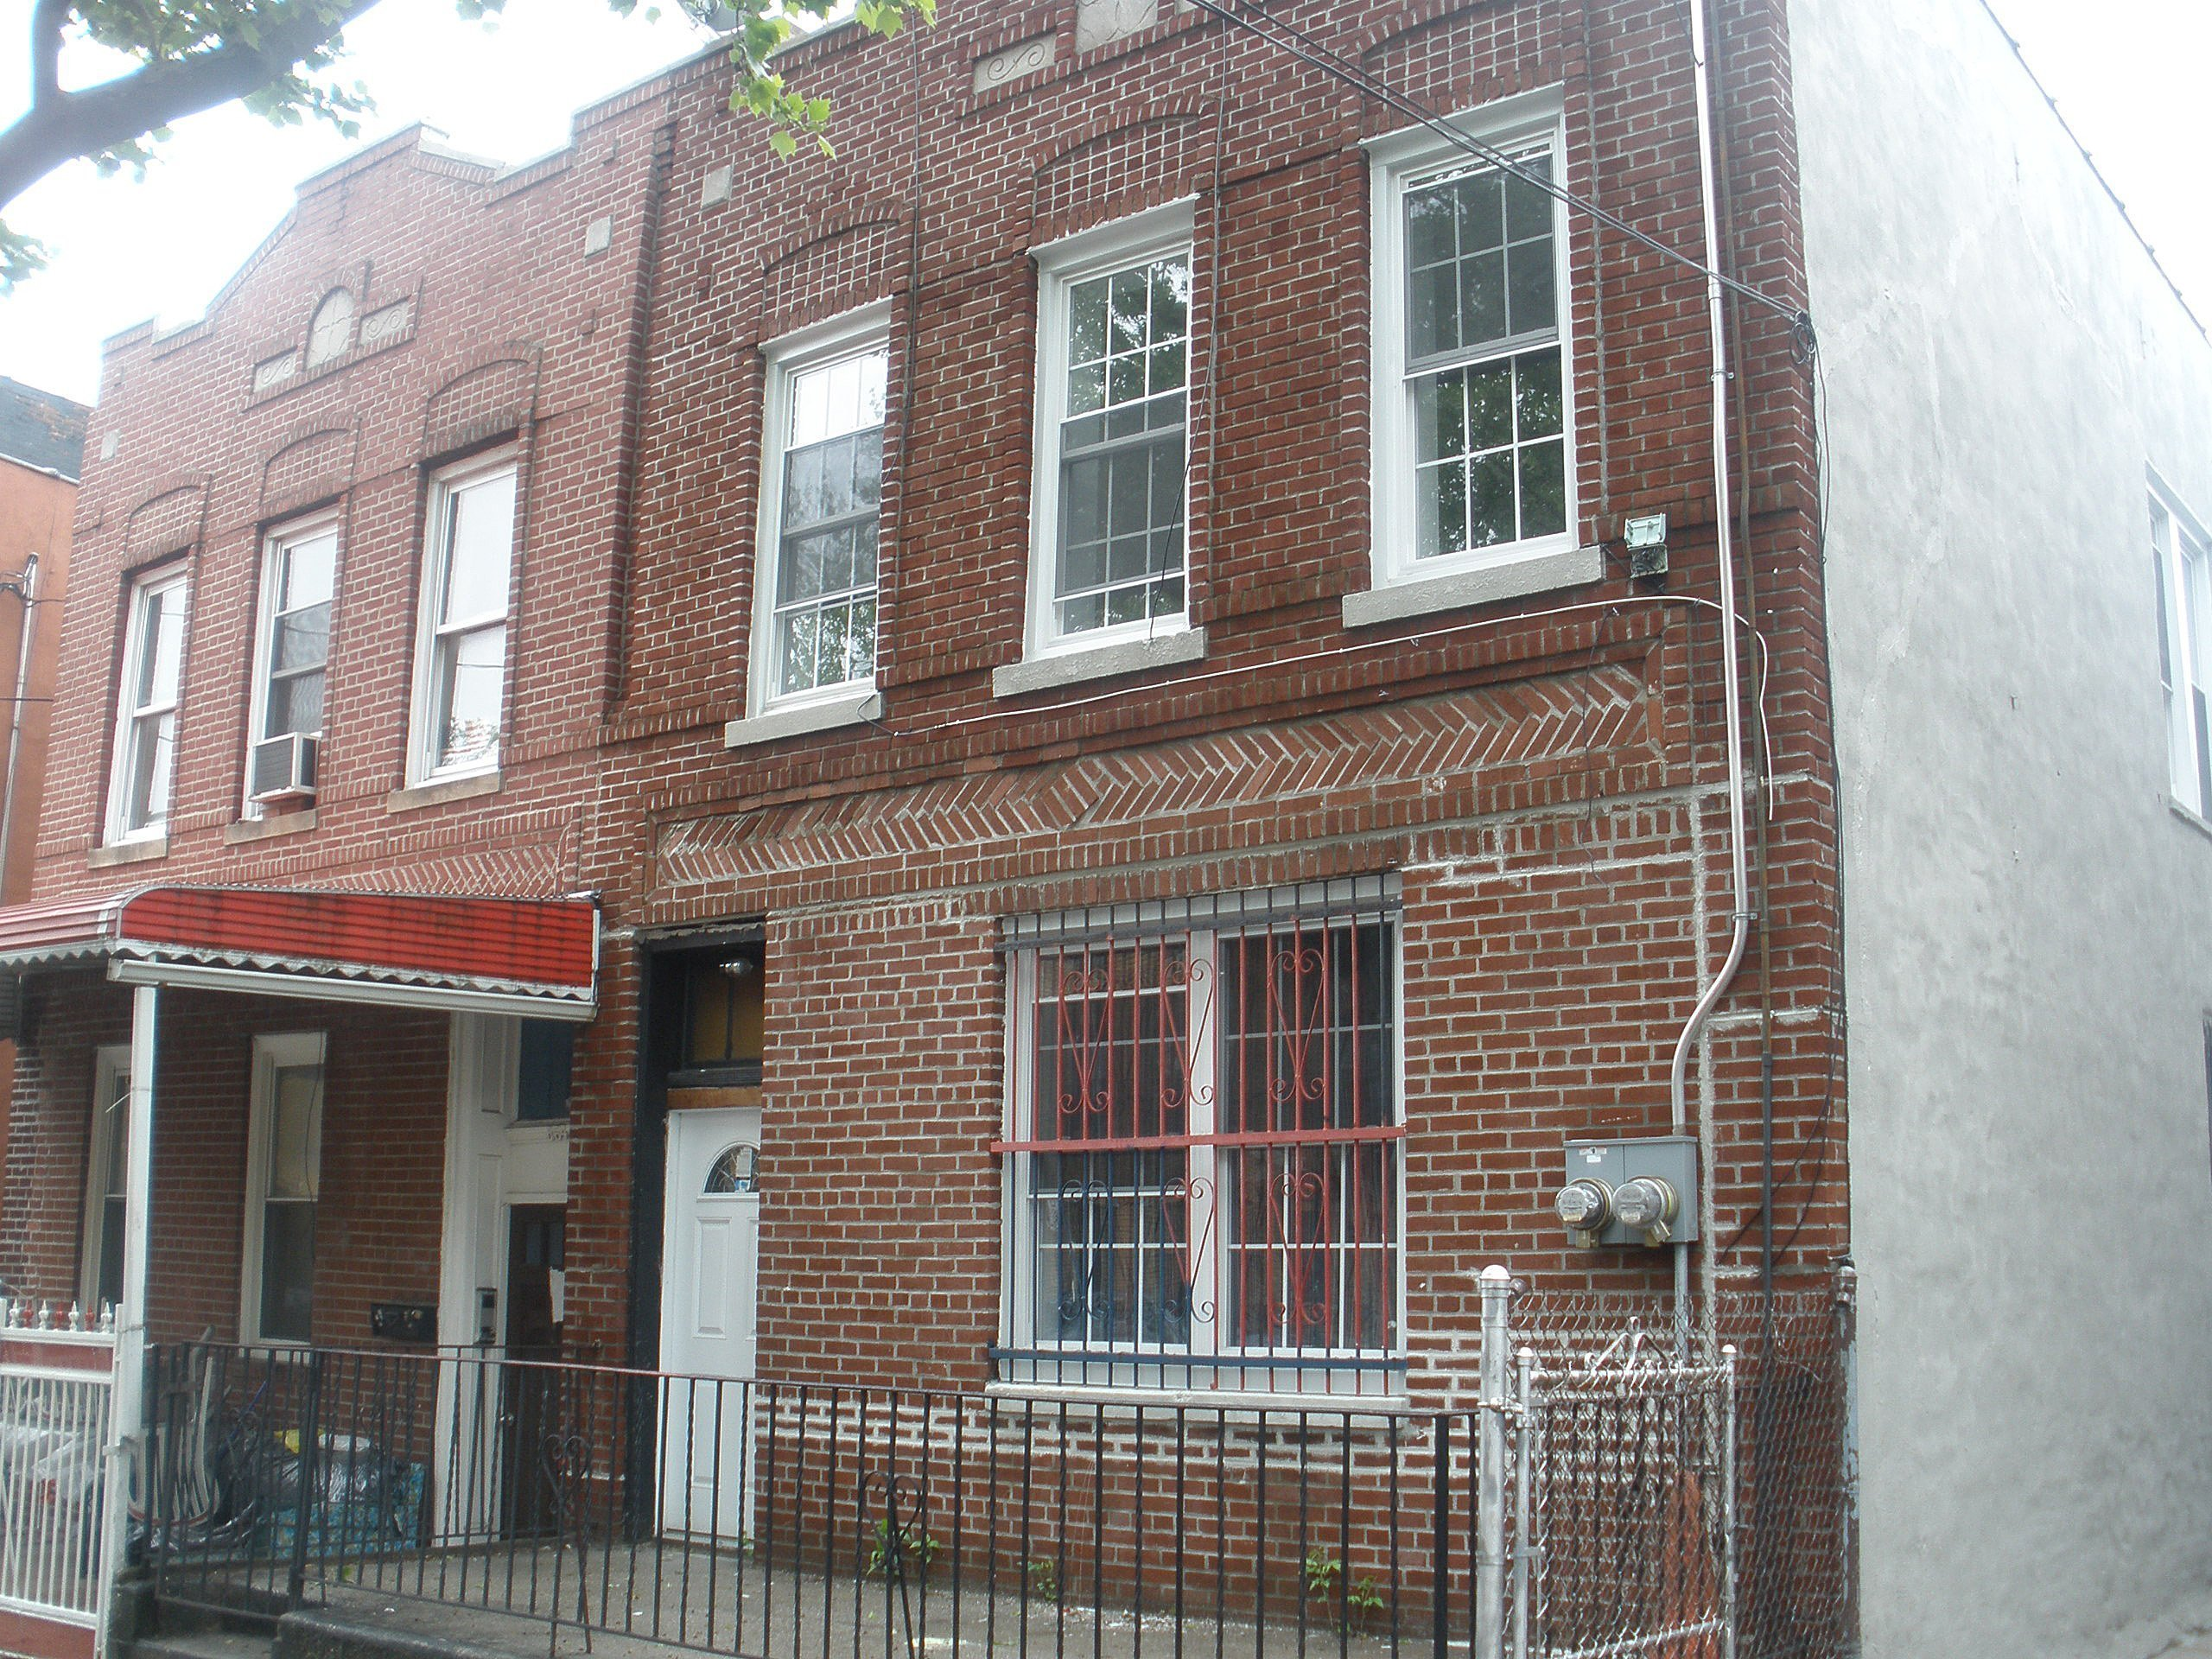 2 family brownsville house for sale brooklyn crg1060 for Buy house in brooklyn